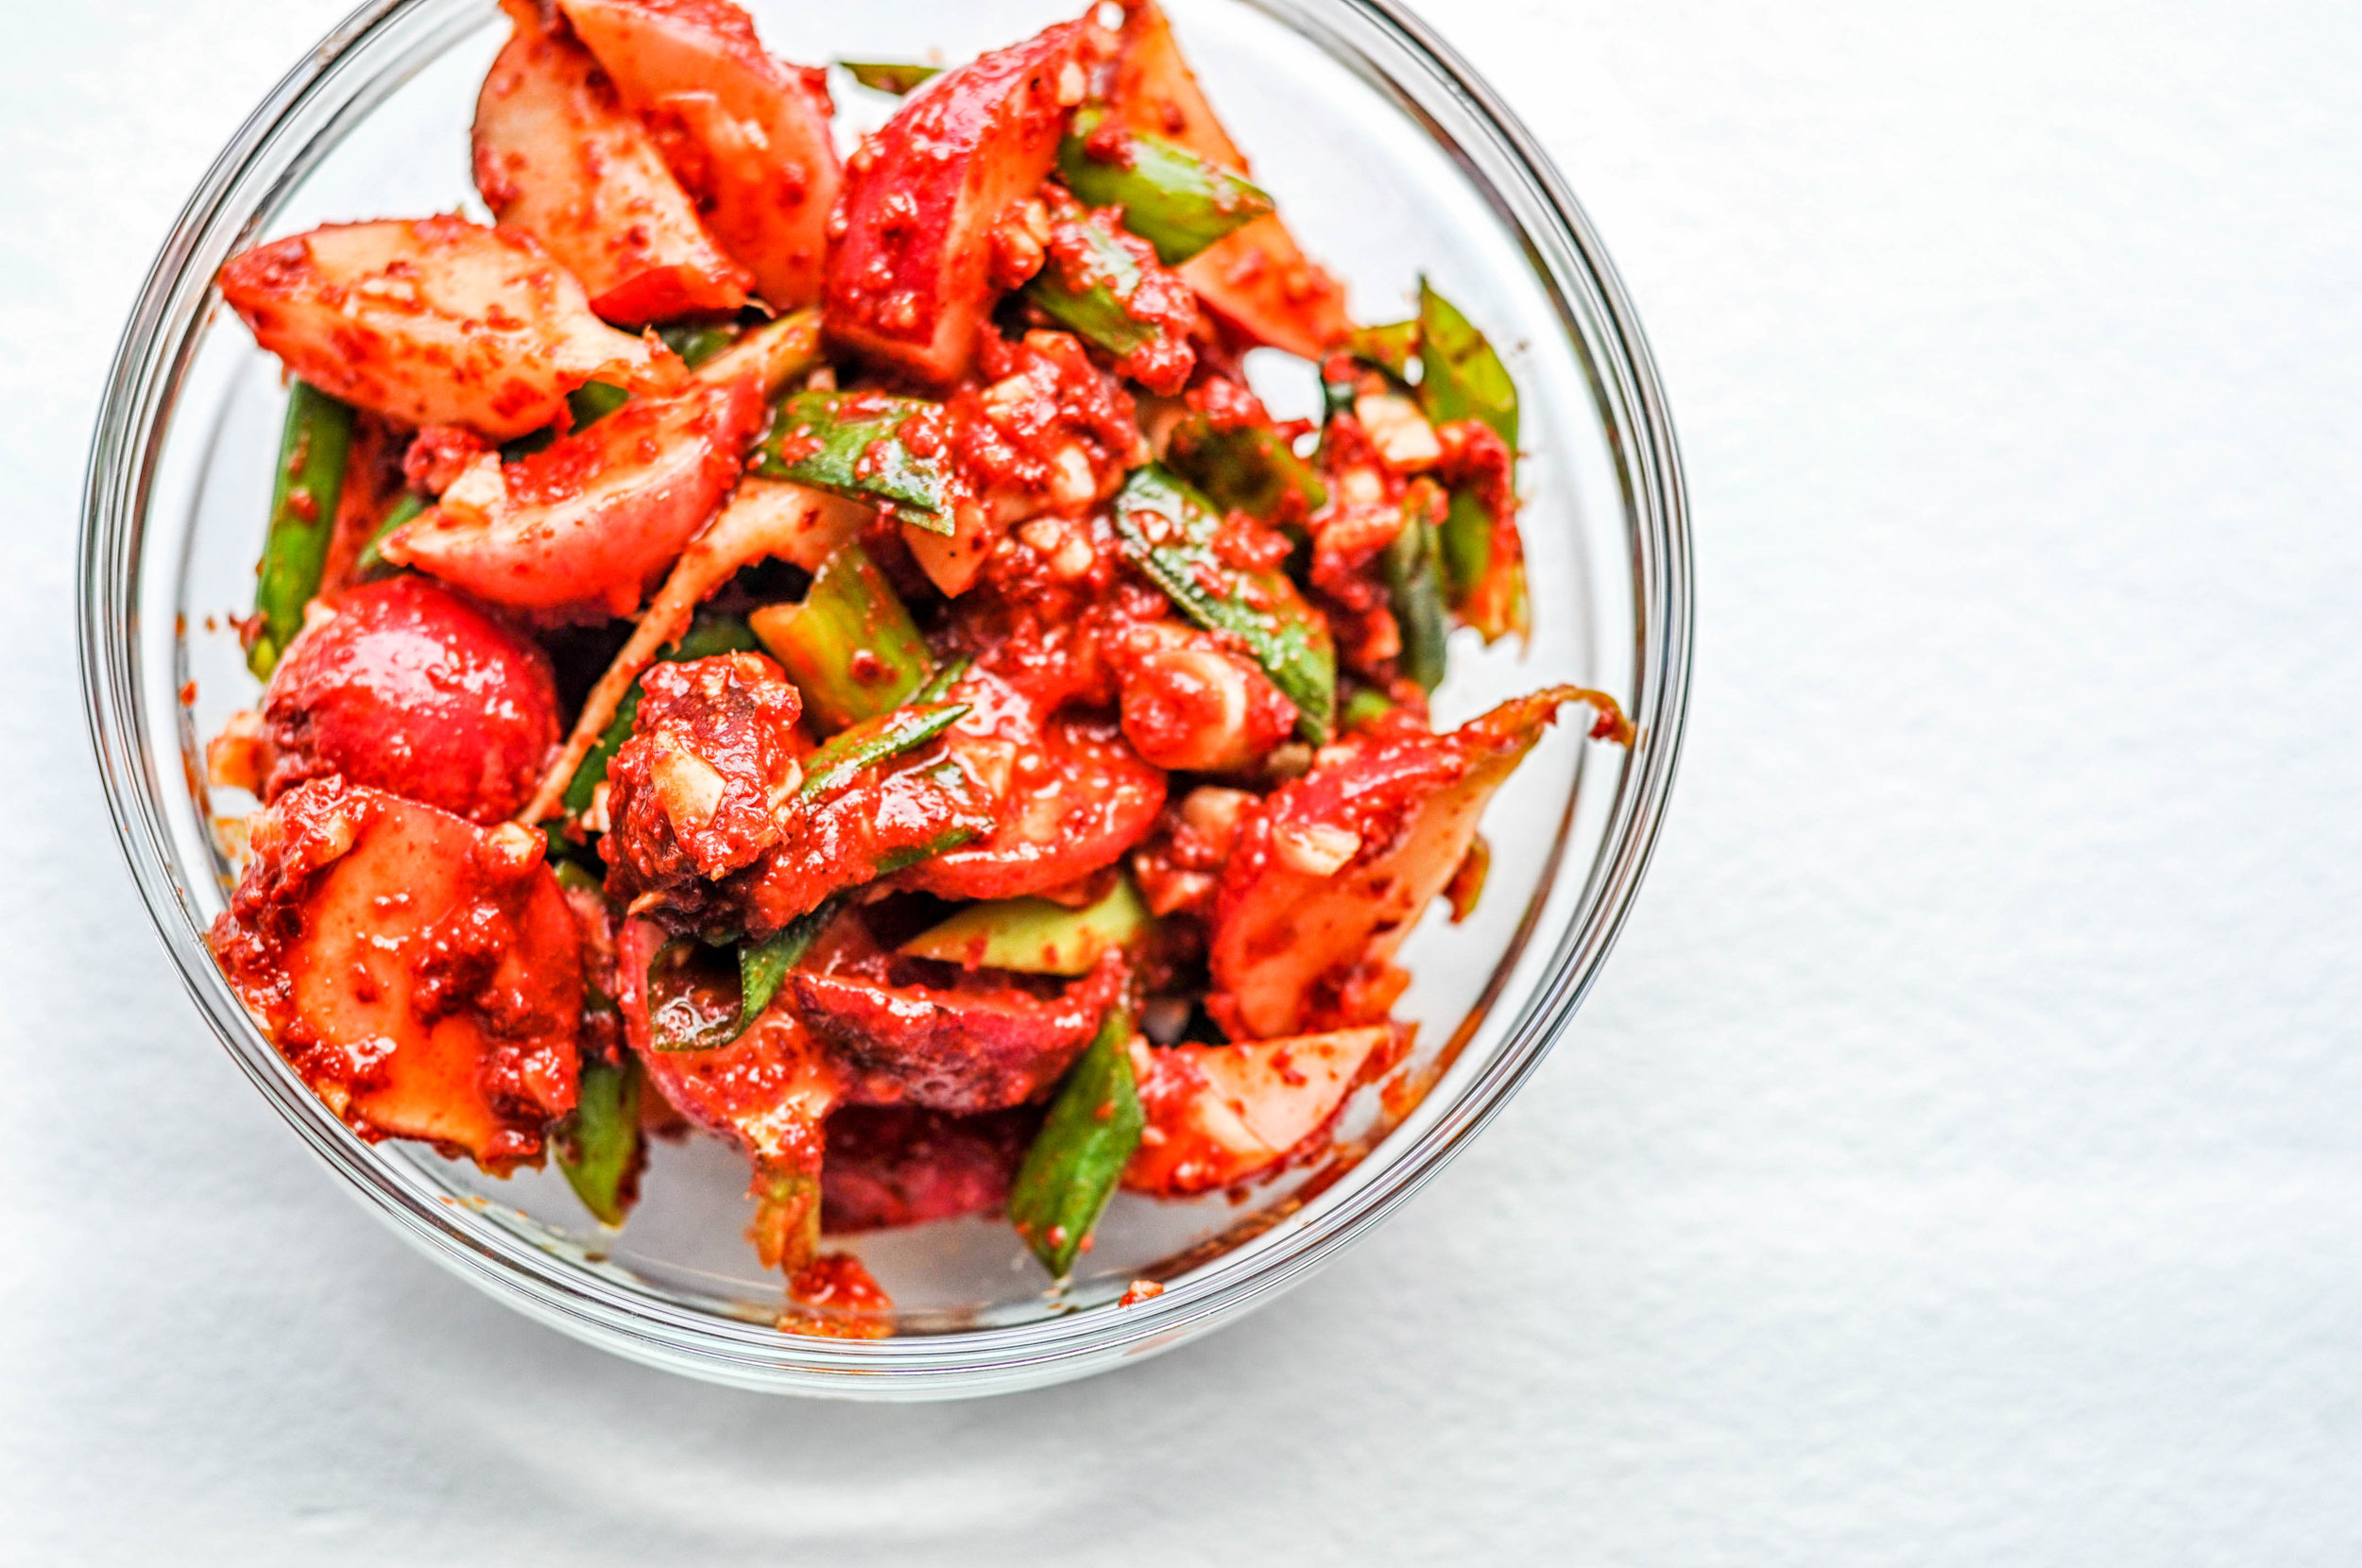 This quick and easy kimchi recipe is going to be one of your favorites! It only takes a few minutes to make it (plus a few days for it to ferment).